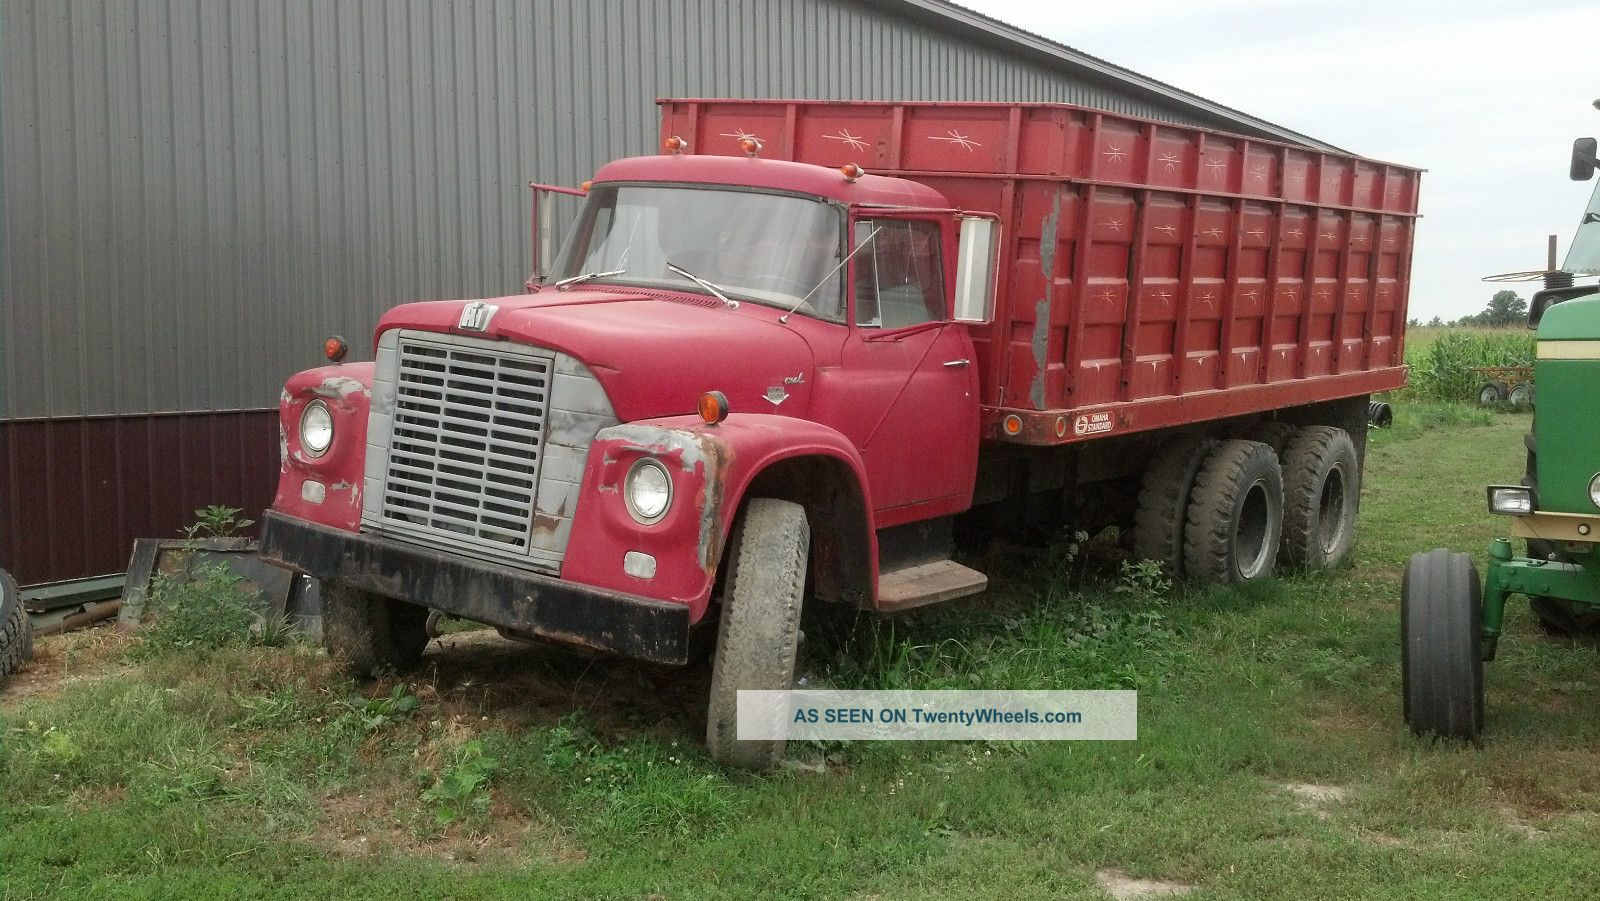 10454 1999 volvo 610 in addition 17902 2008 ford f   550 furthermore 8074 1996 international 4700 likewise 33308 2006 ford e   350 cutaway additionally Mack R series. on semi truck dump trailers specs